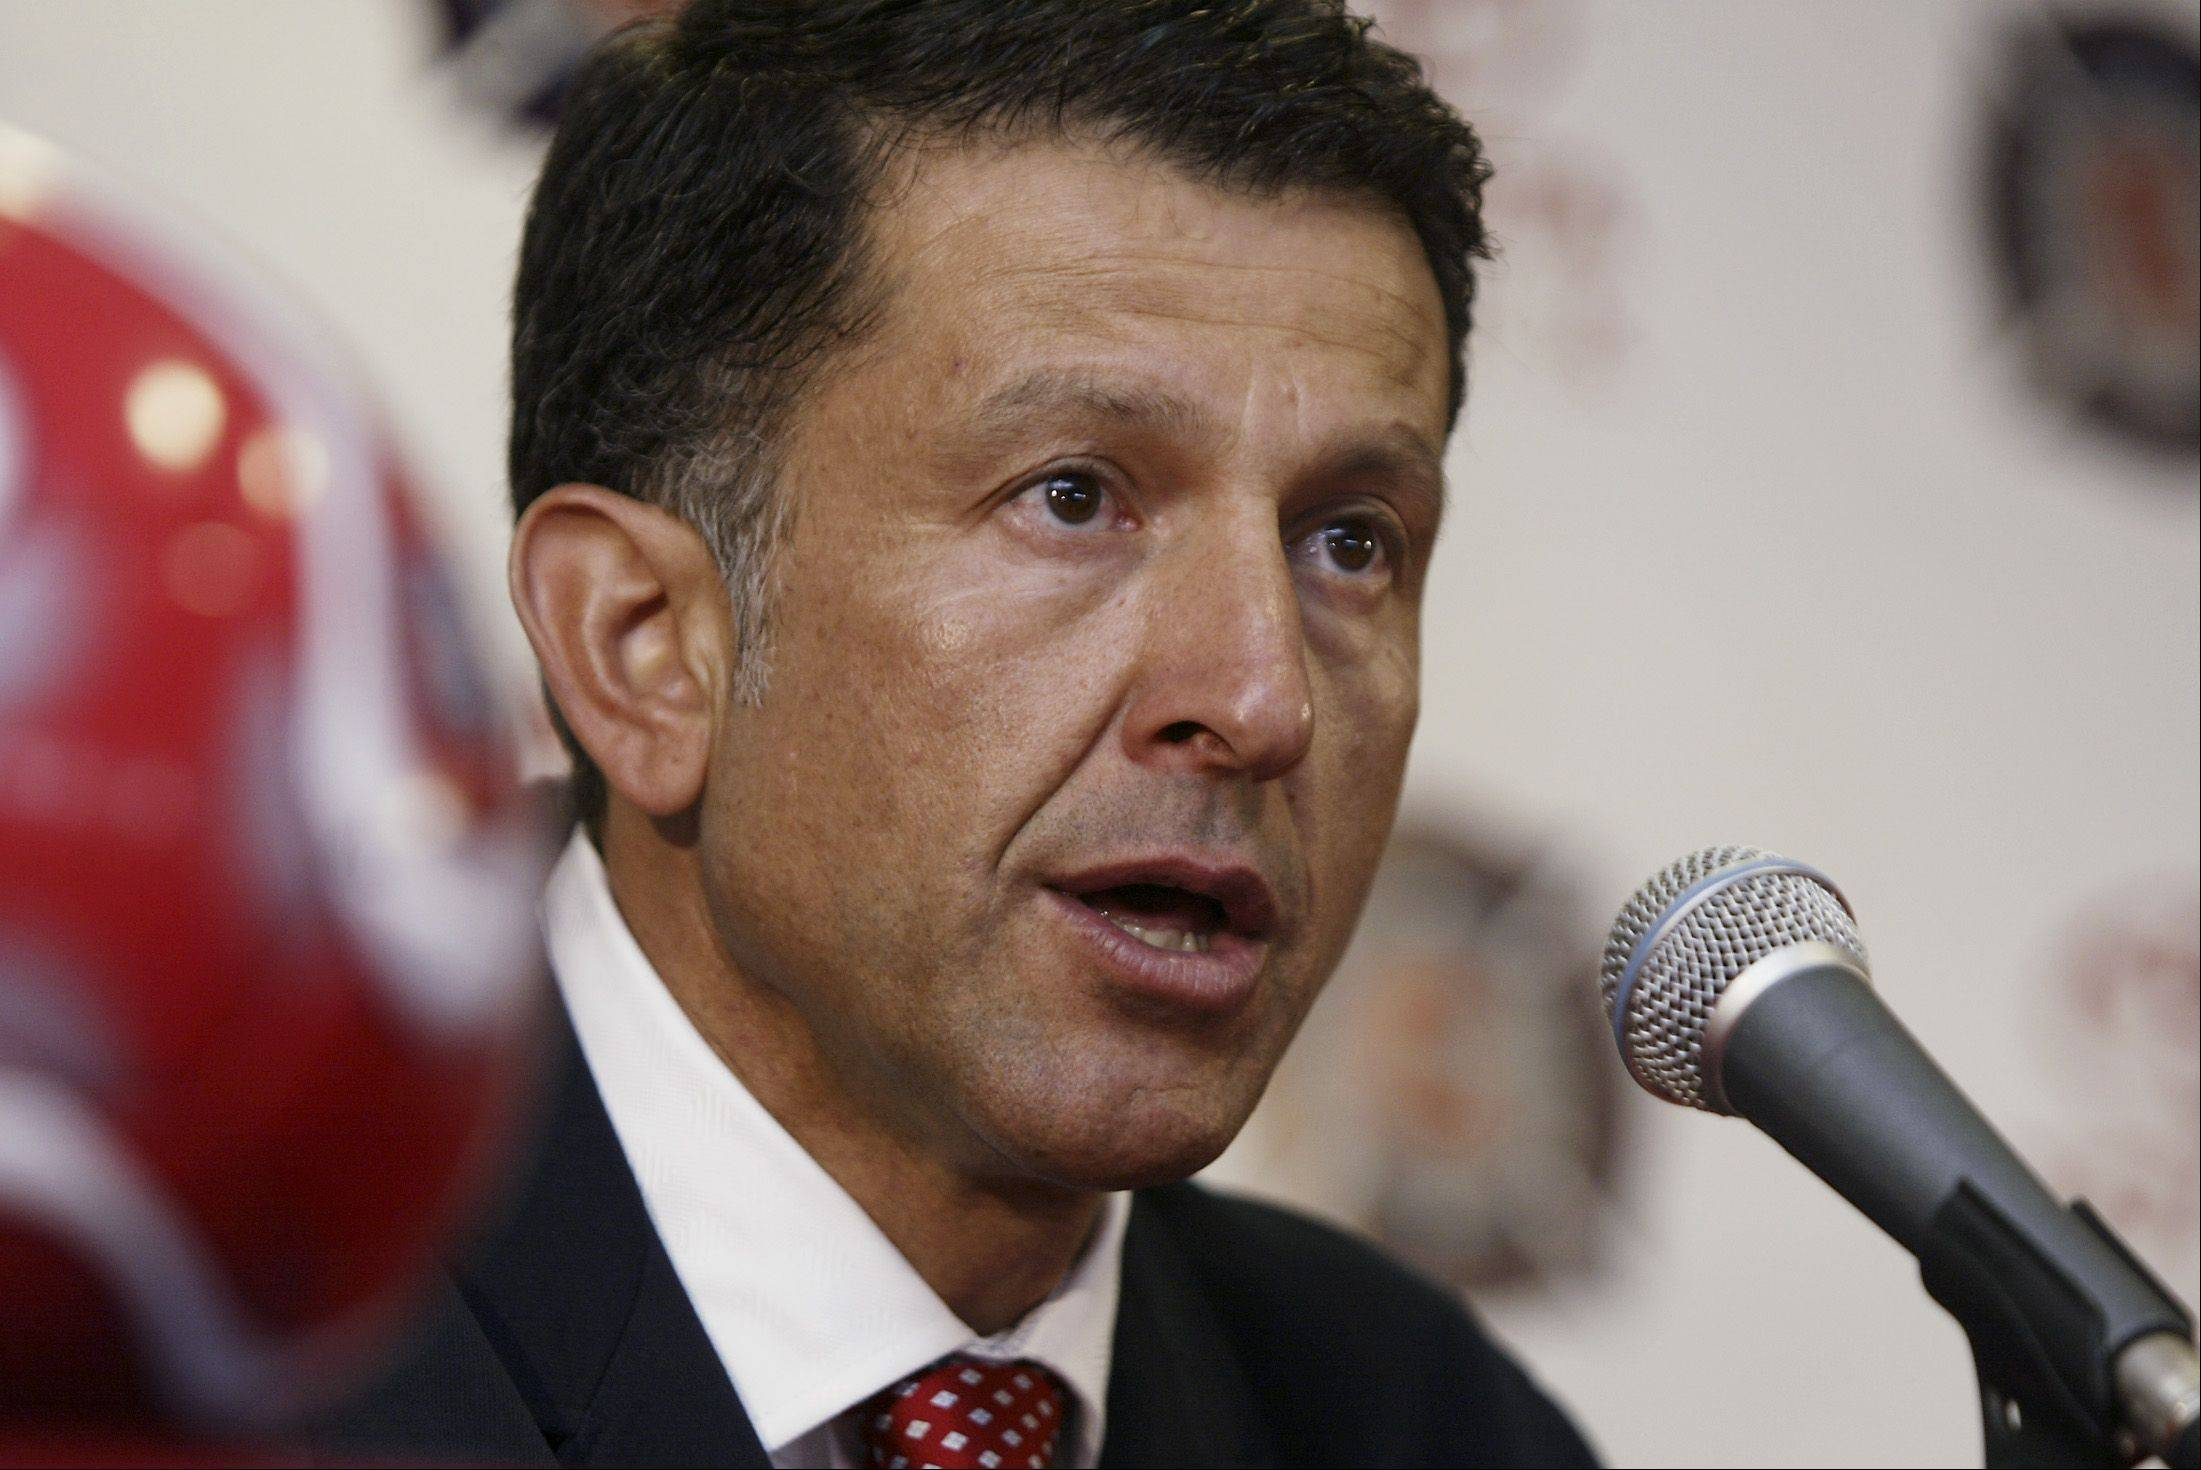 Juan Carlos Osorio answers a question during a press conference announcing him as the head coach of the Chicago Fire. Osorio coached the team for the 2007 season.